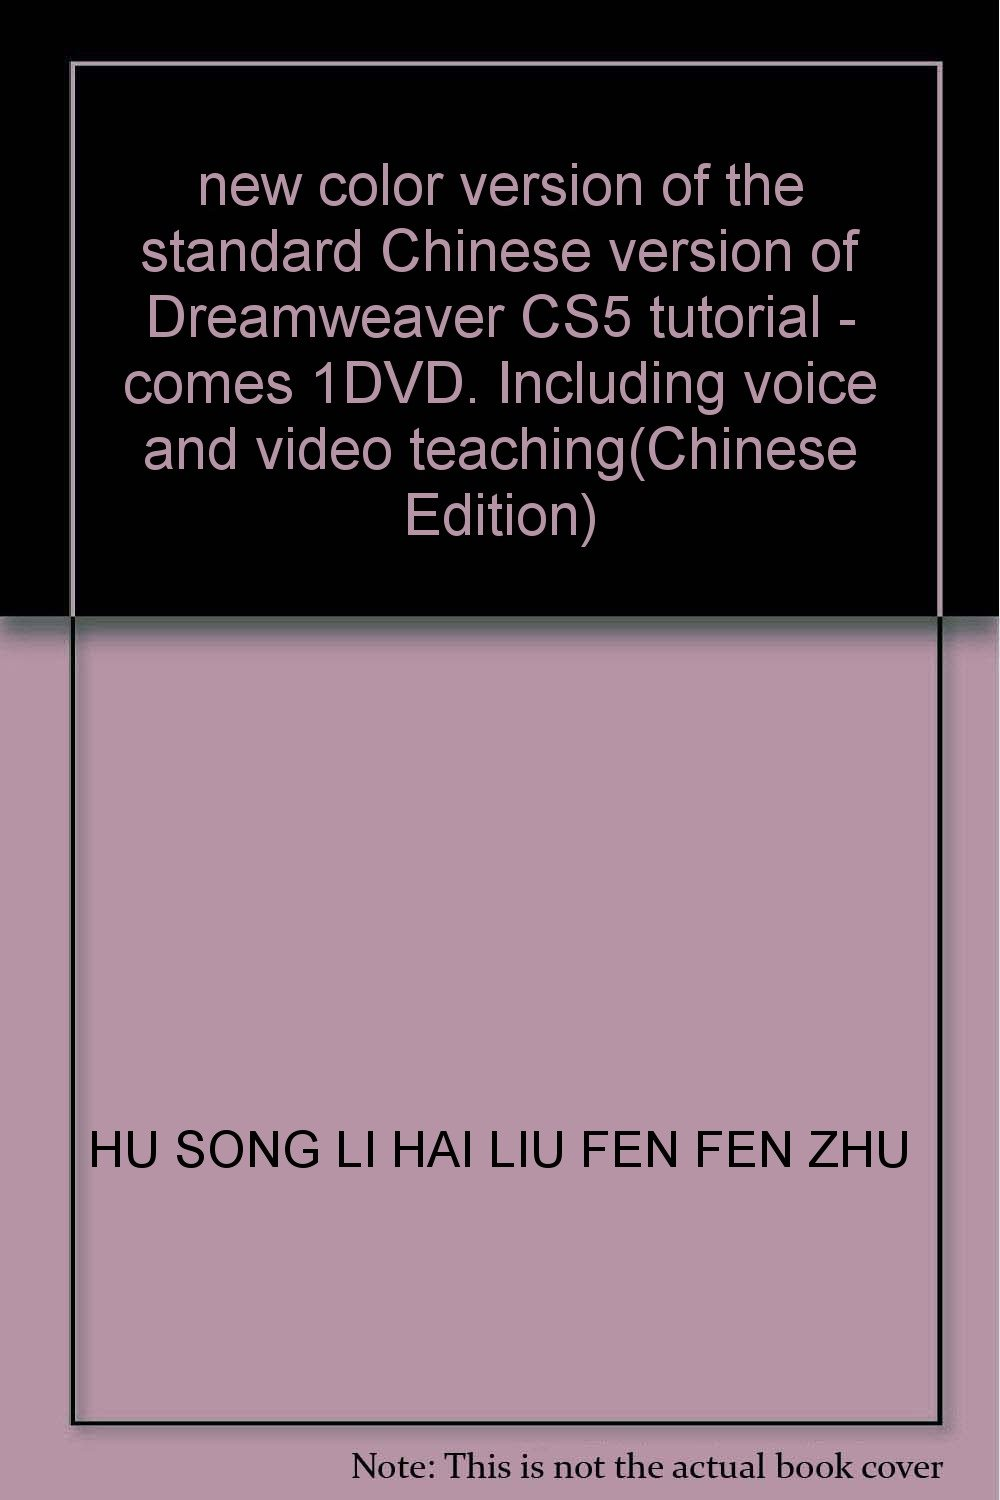 Read Online new color version of the standard Chinese version of Dreamweaver CS5 tutorial - comes 1DVD. Including voice and video teaching(Chinese Edition) PDF